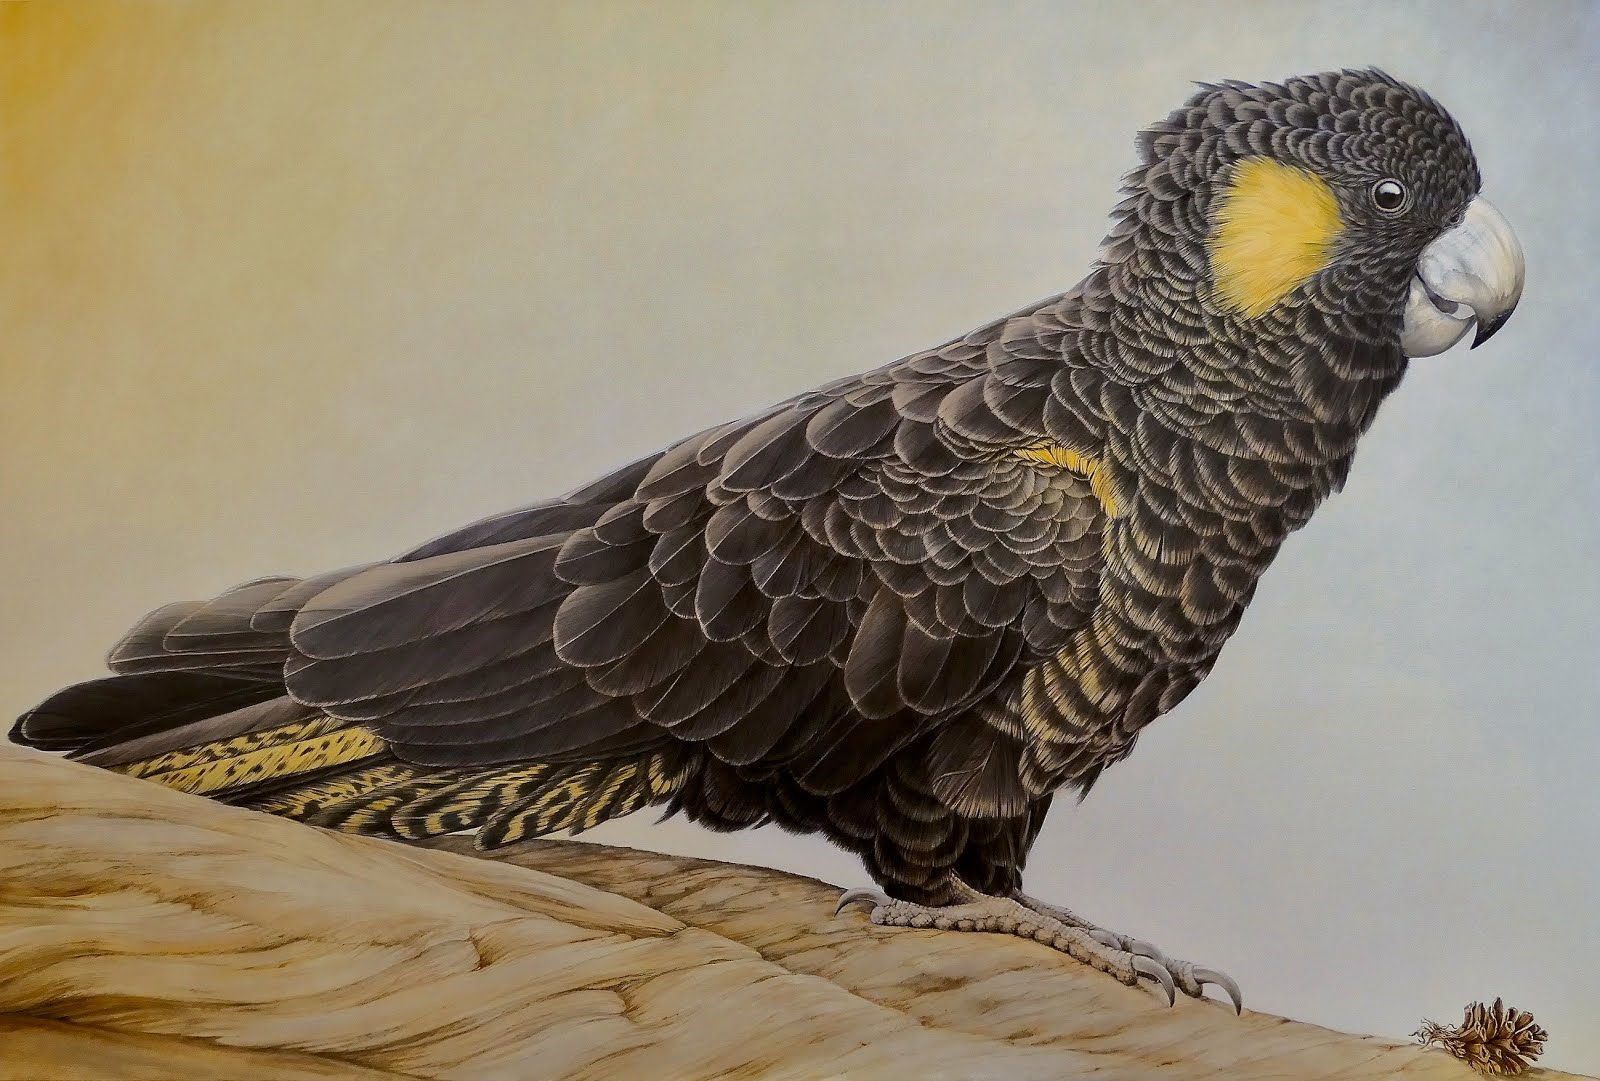 Yellow Tailed Black Cockatoo 2019 by Janet Luxton.